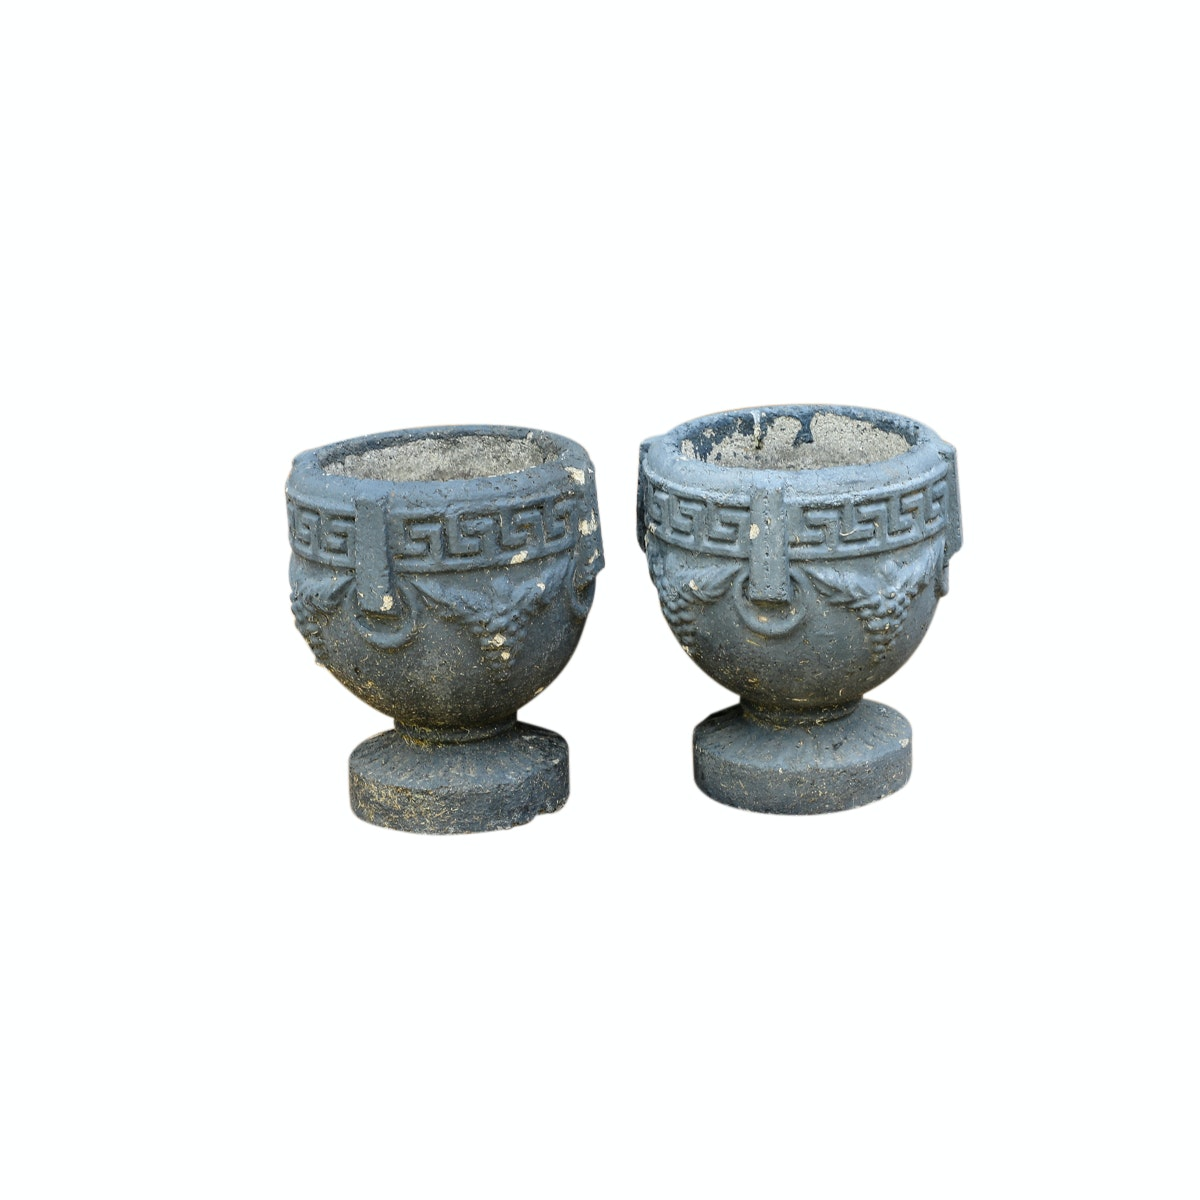 Vintage Outdoor Planters with Greek Key Accents